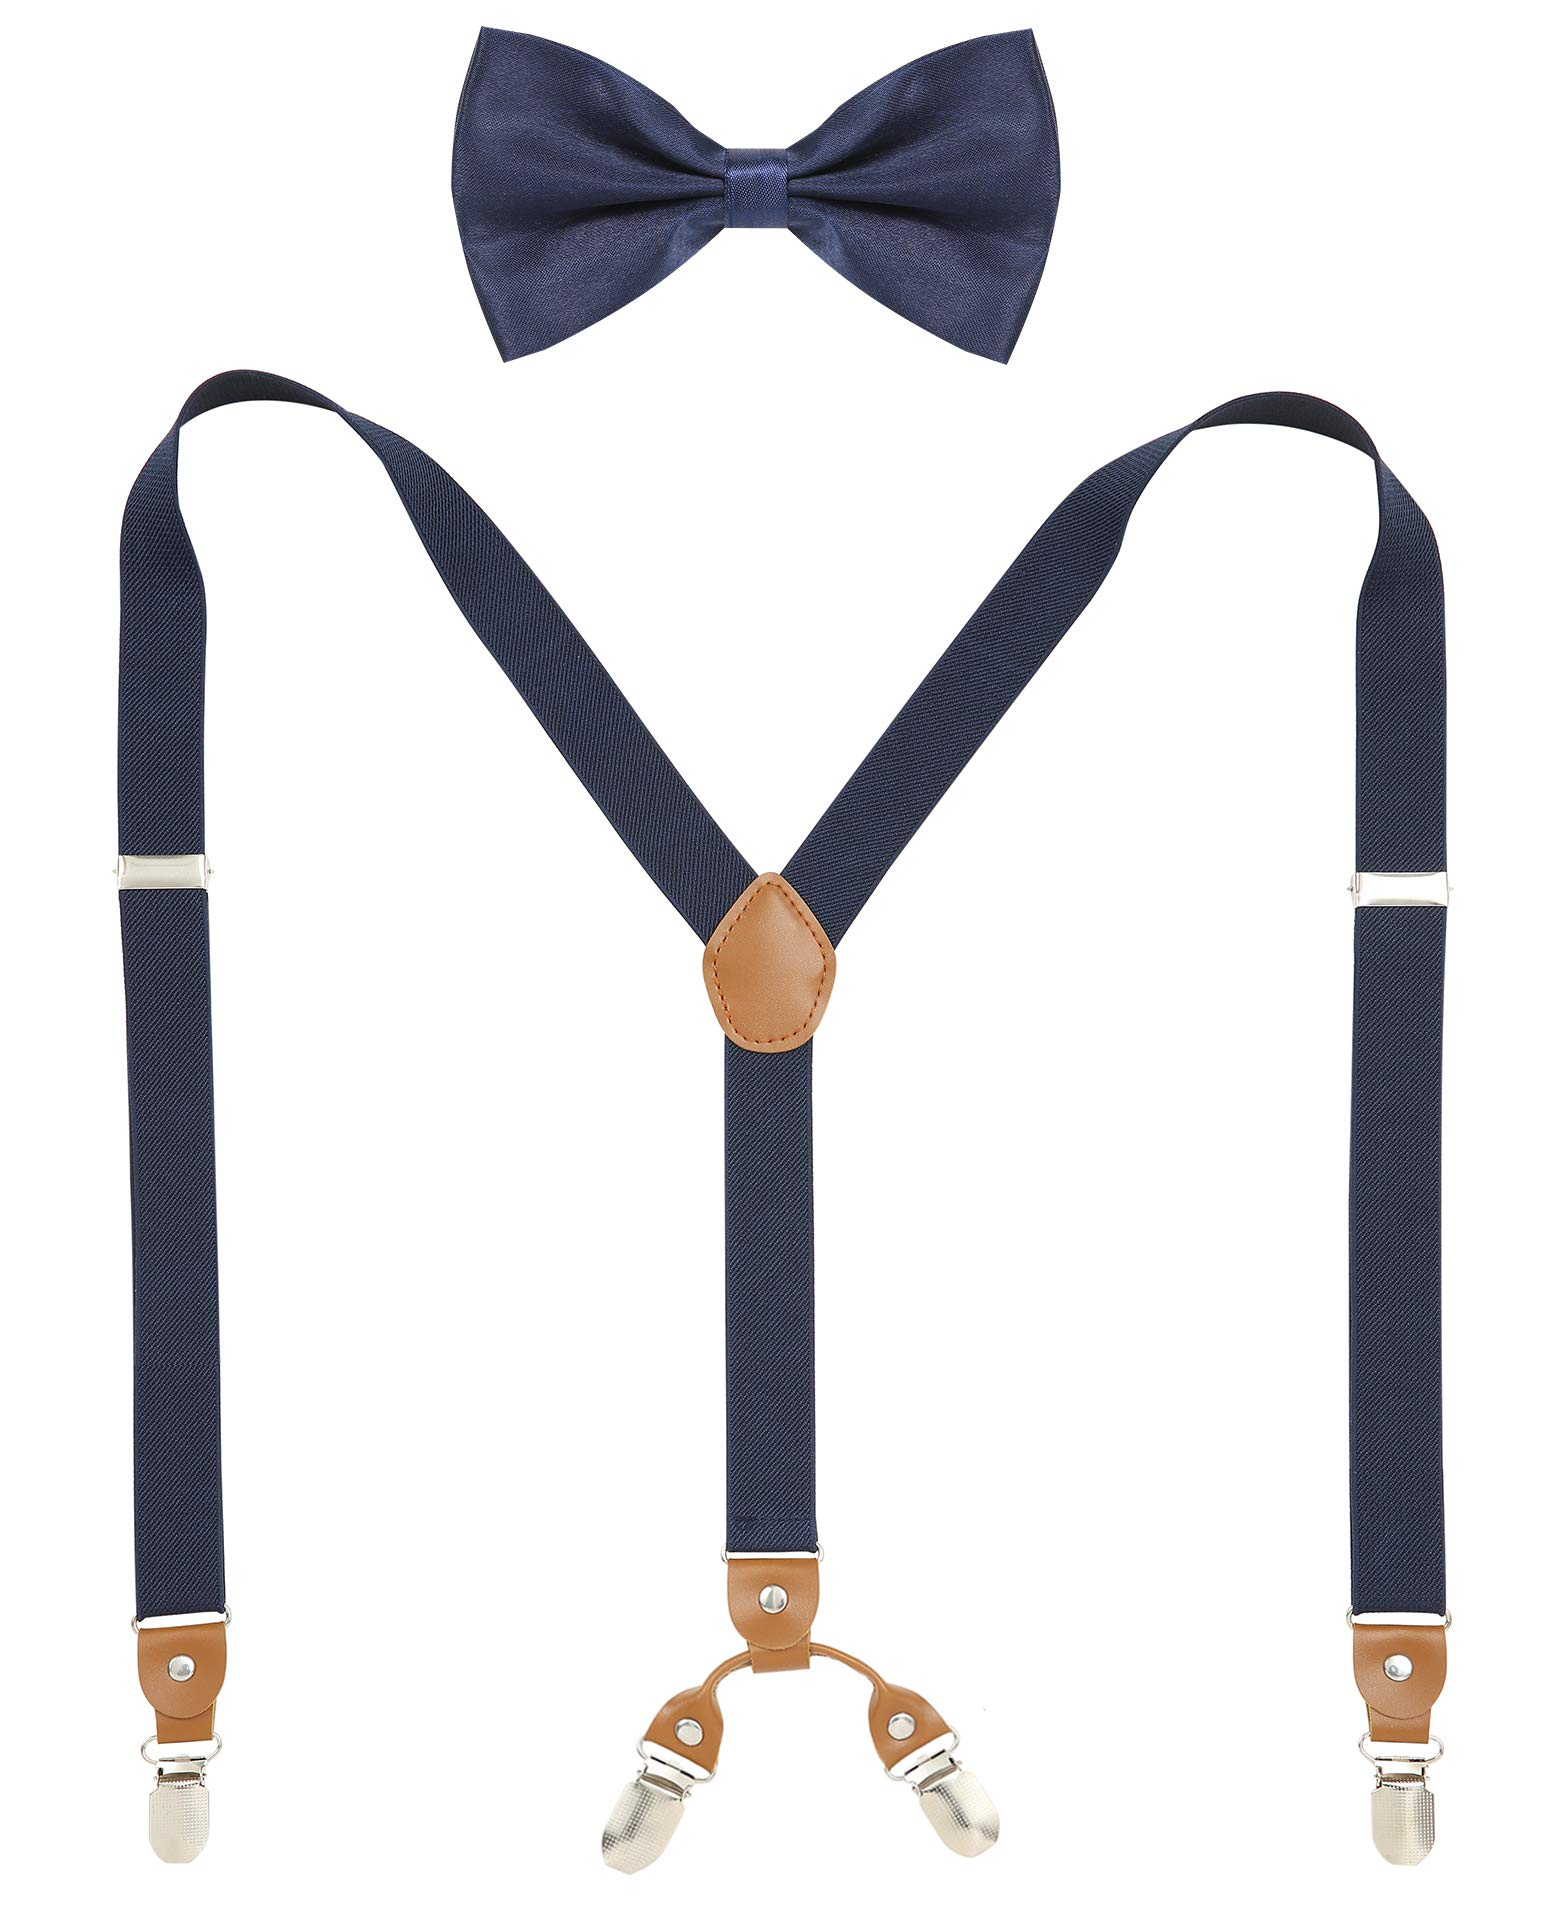 Jiaqee Suspenders Bowtie Set X-back Suspender For Men with Bow Tie Elastic 1 Wide Band